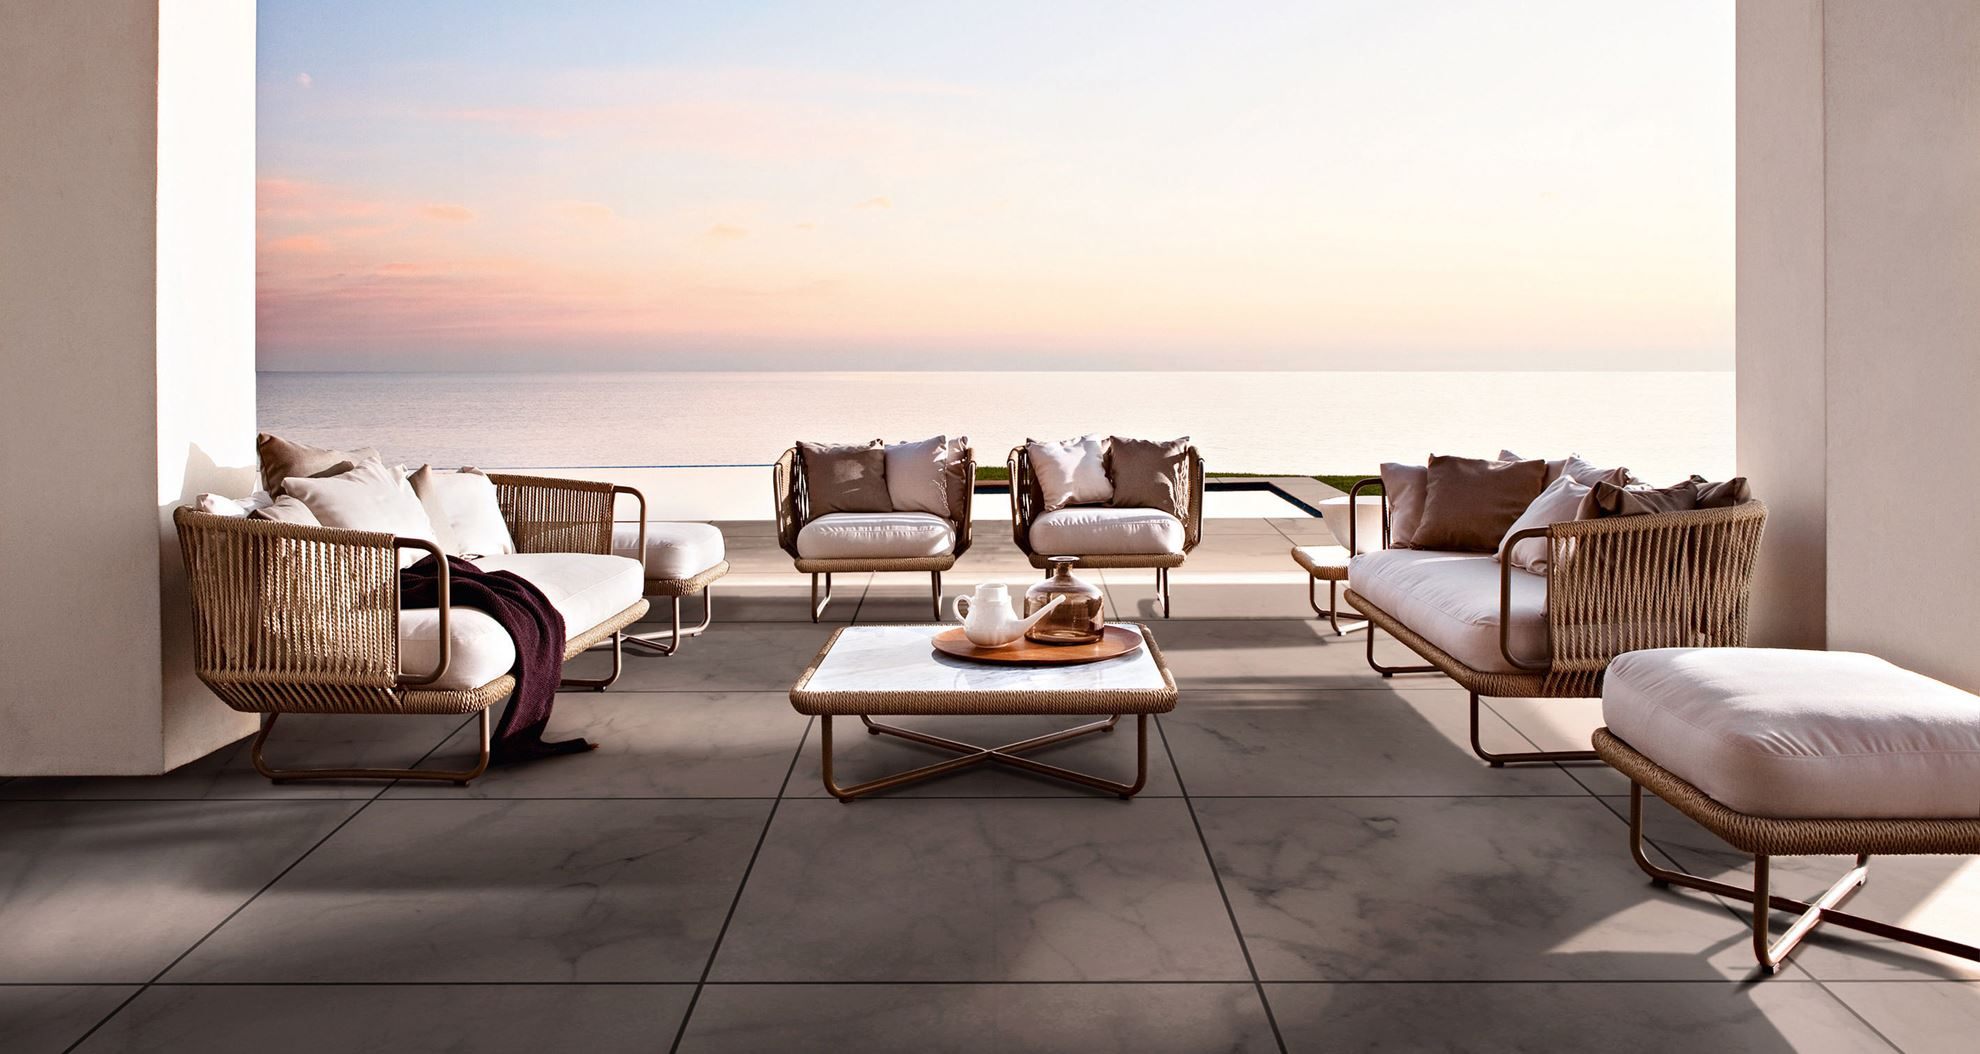 outdoor furniture on a hotel terrace in front of the sea